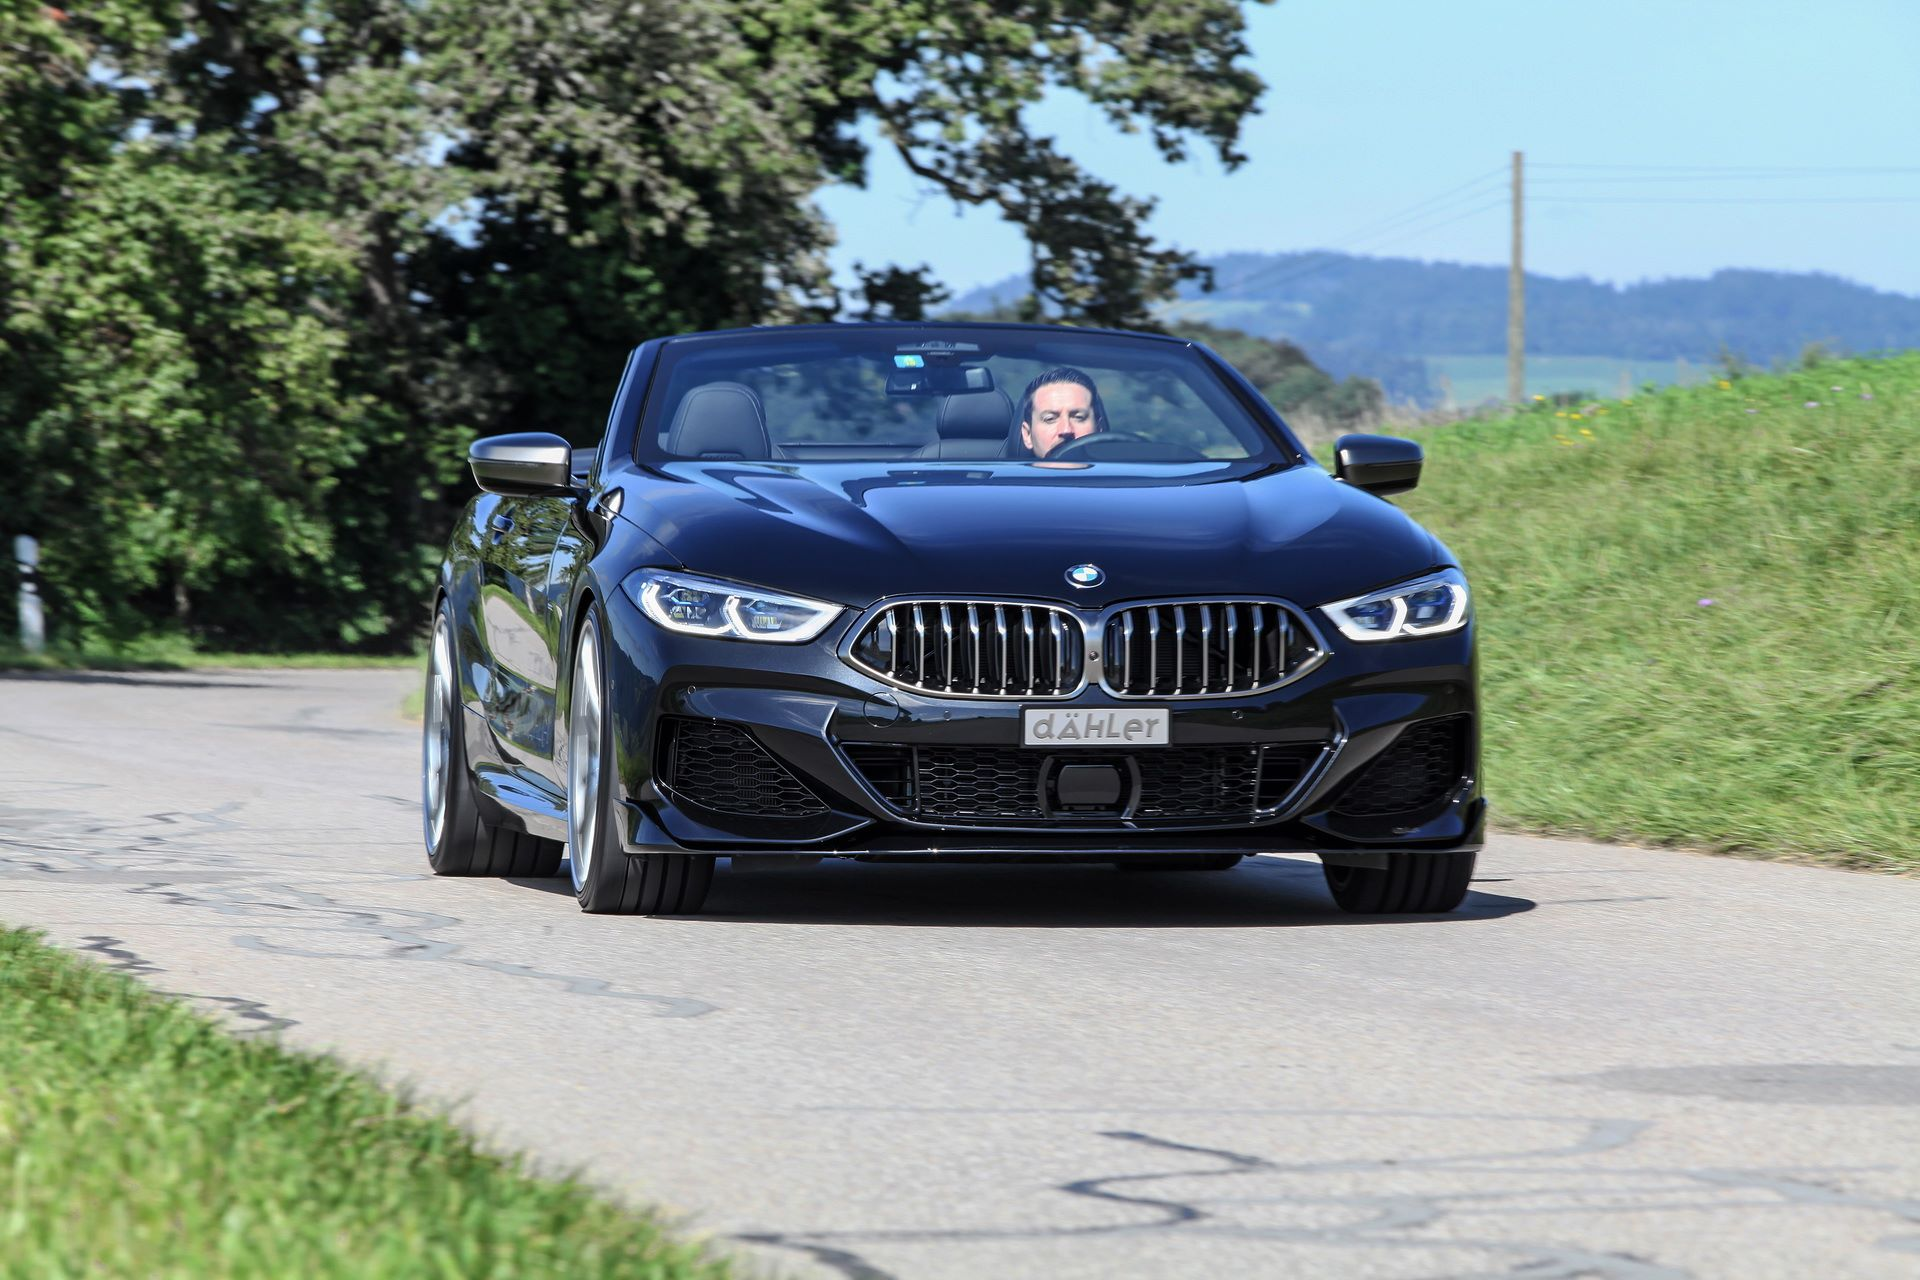 BMW-M850i-convertible-by-Dahler-11